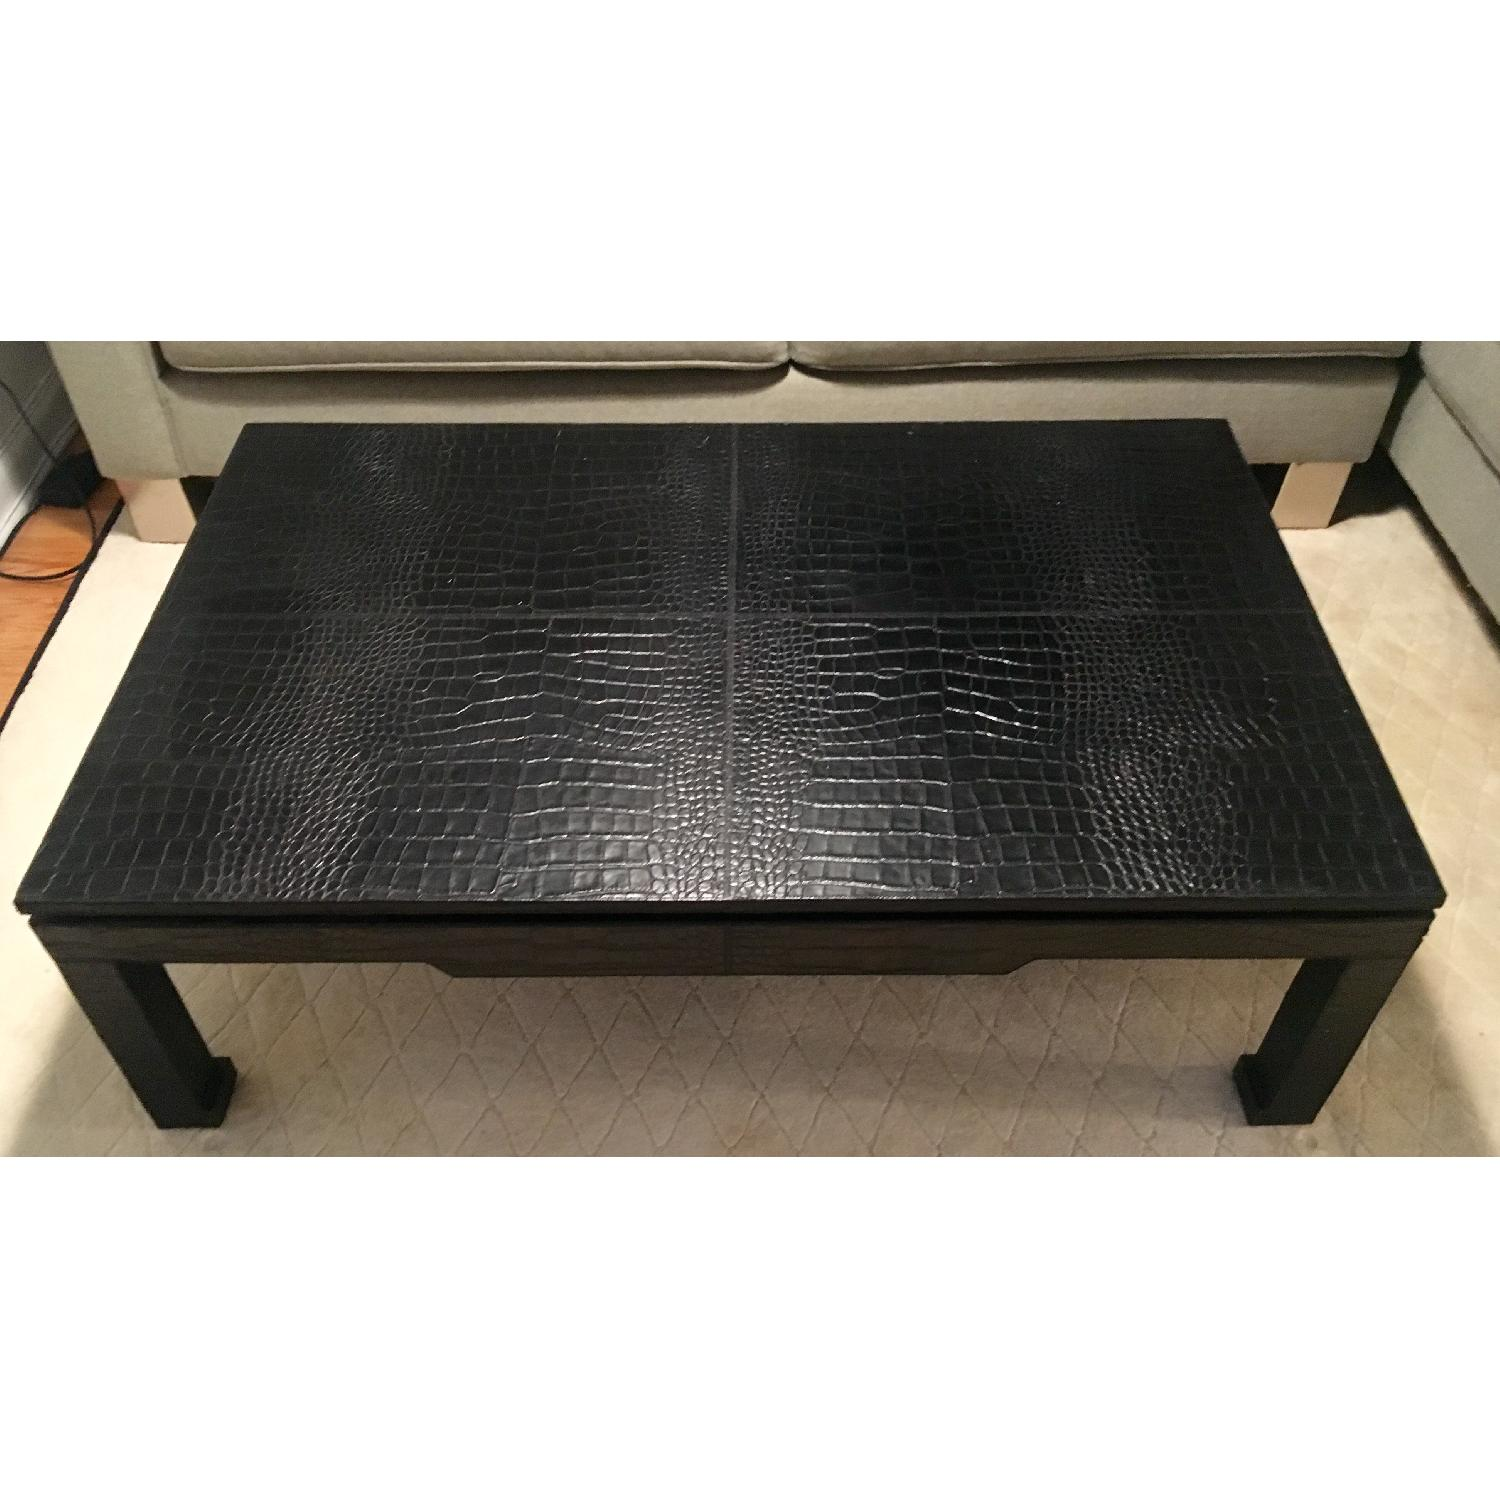 Jonathan Adler Croc-Embossed Leather Cocktail Table w/ Ming Feet - image-2